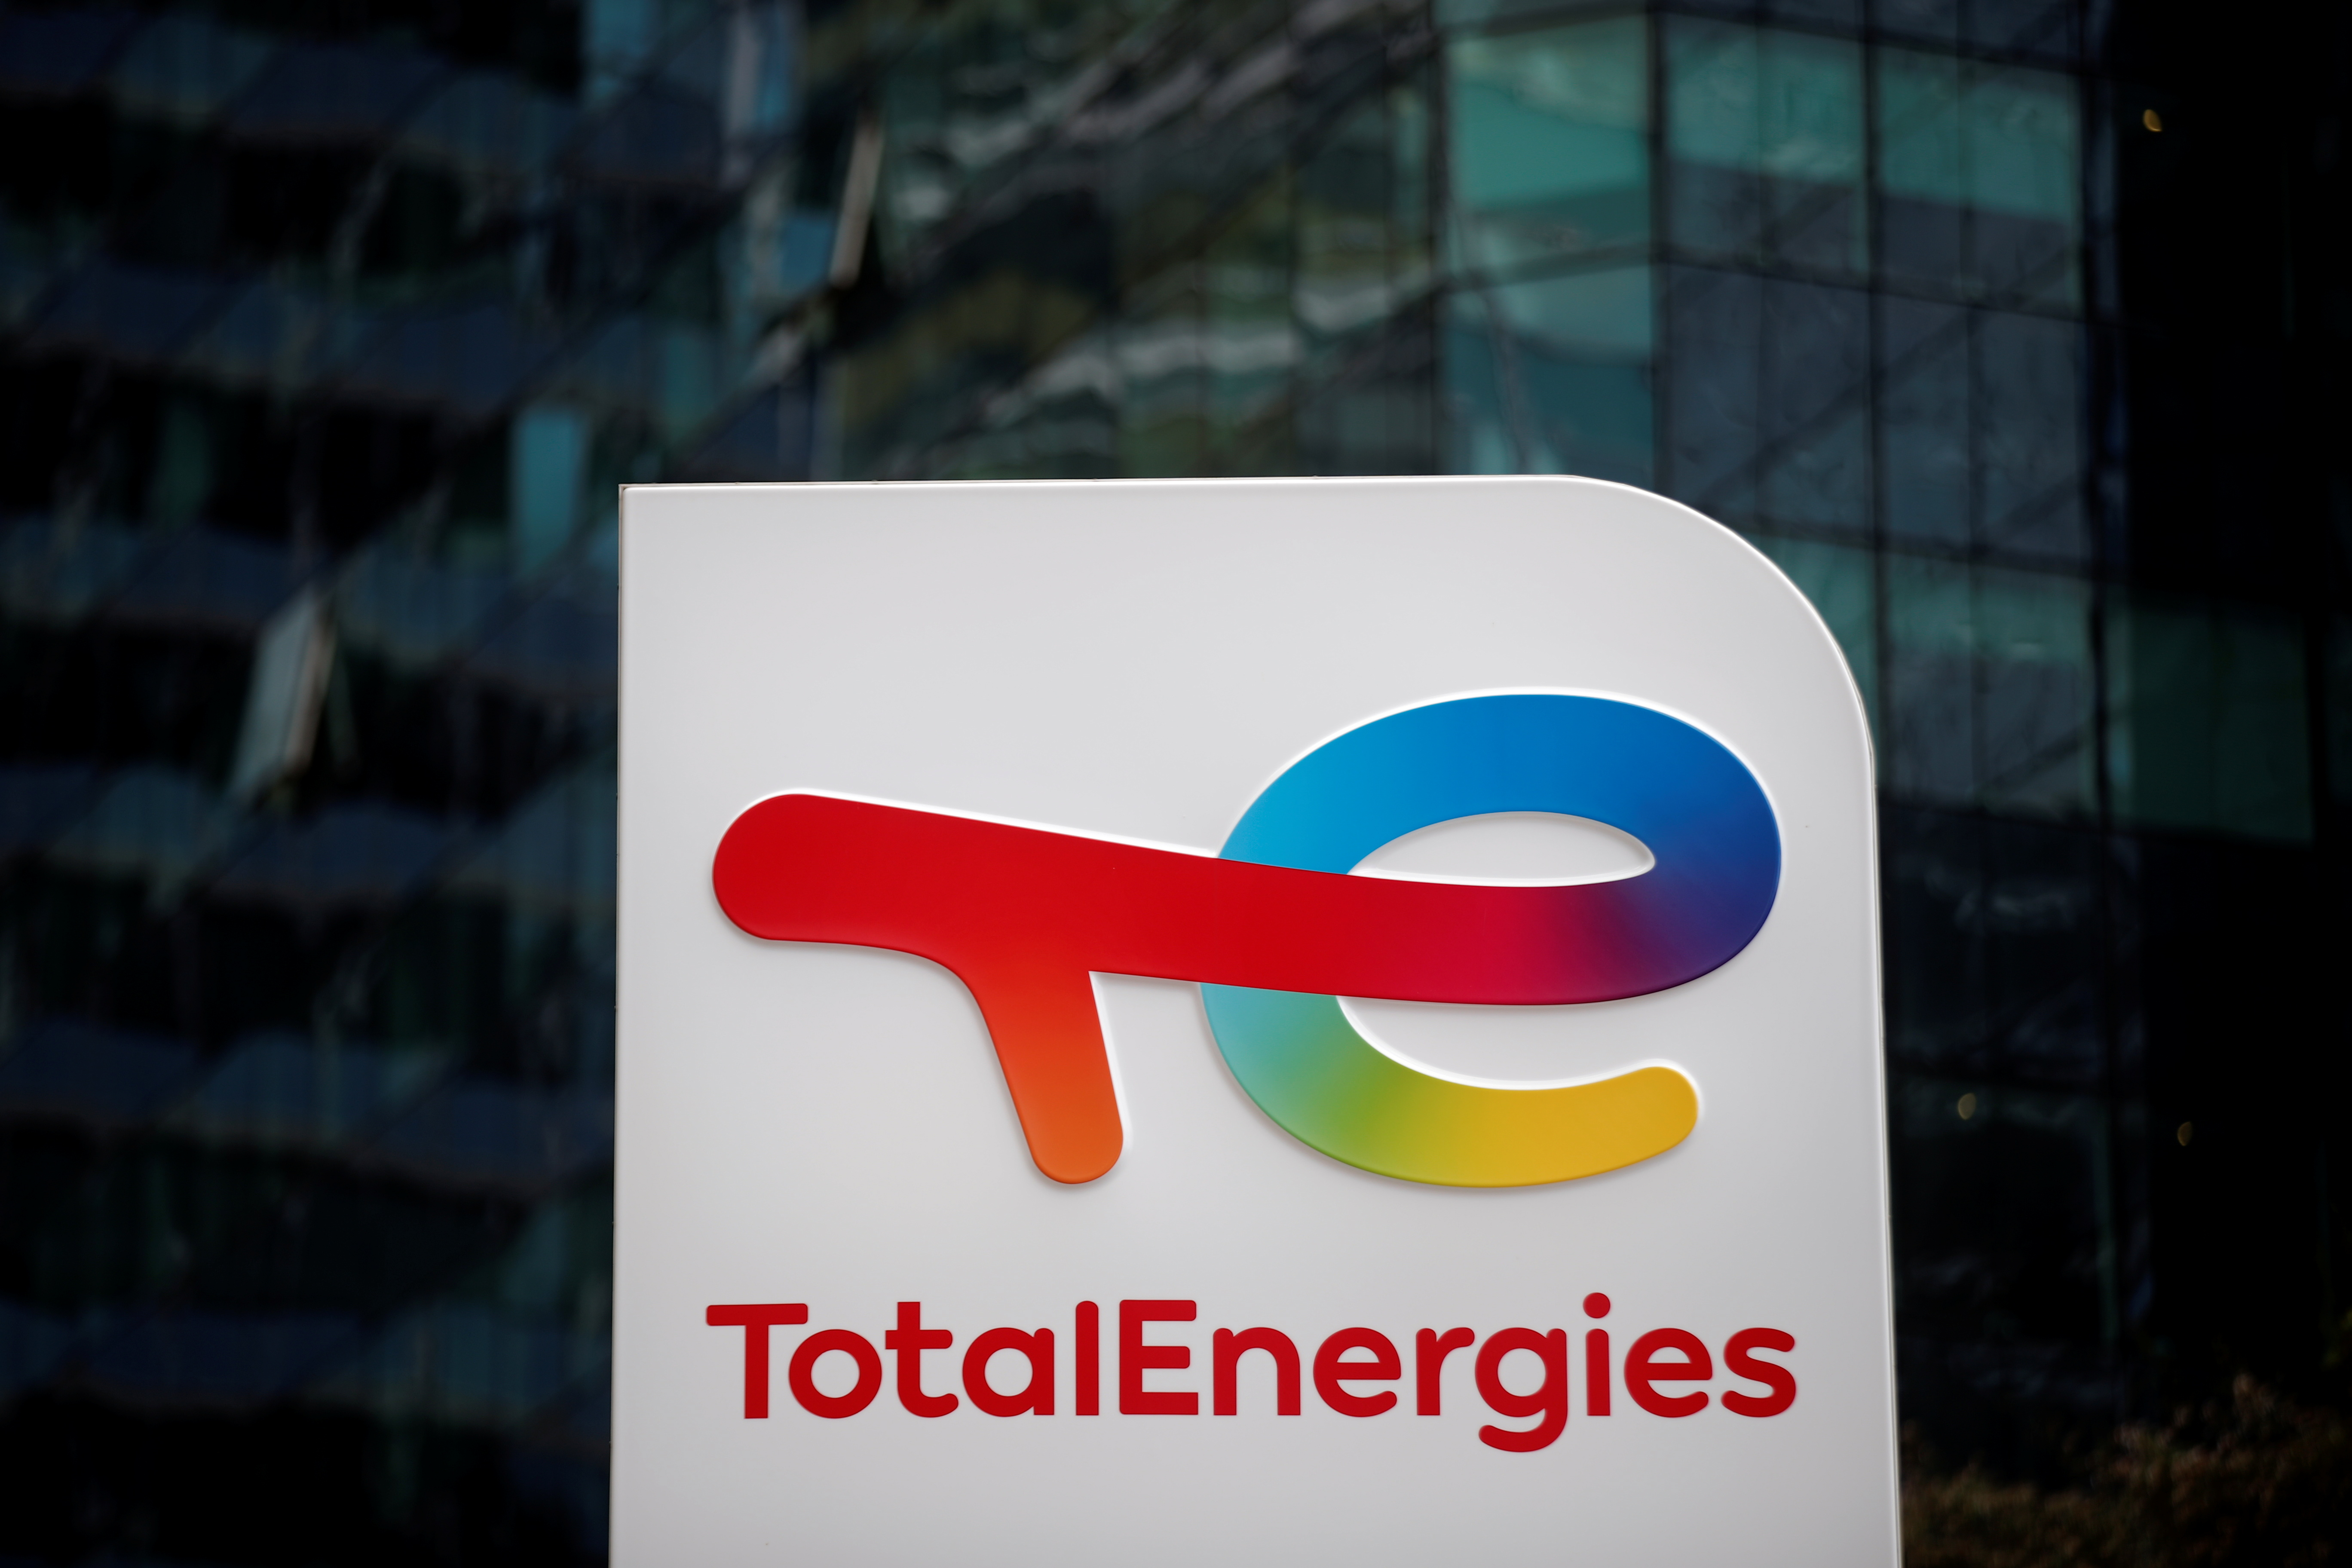 A general view of logo at the TotalEnergies electric vehicle fuelling station in the La Defense business district in Paris, France, July 28, 2021. REUTERS/Benoit Tessier